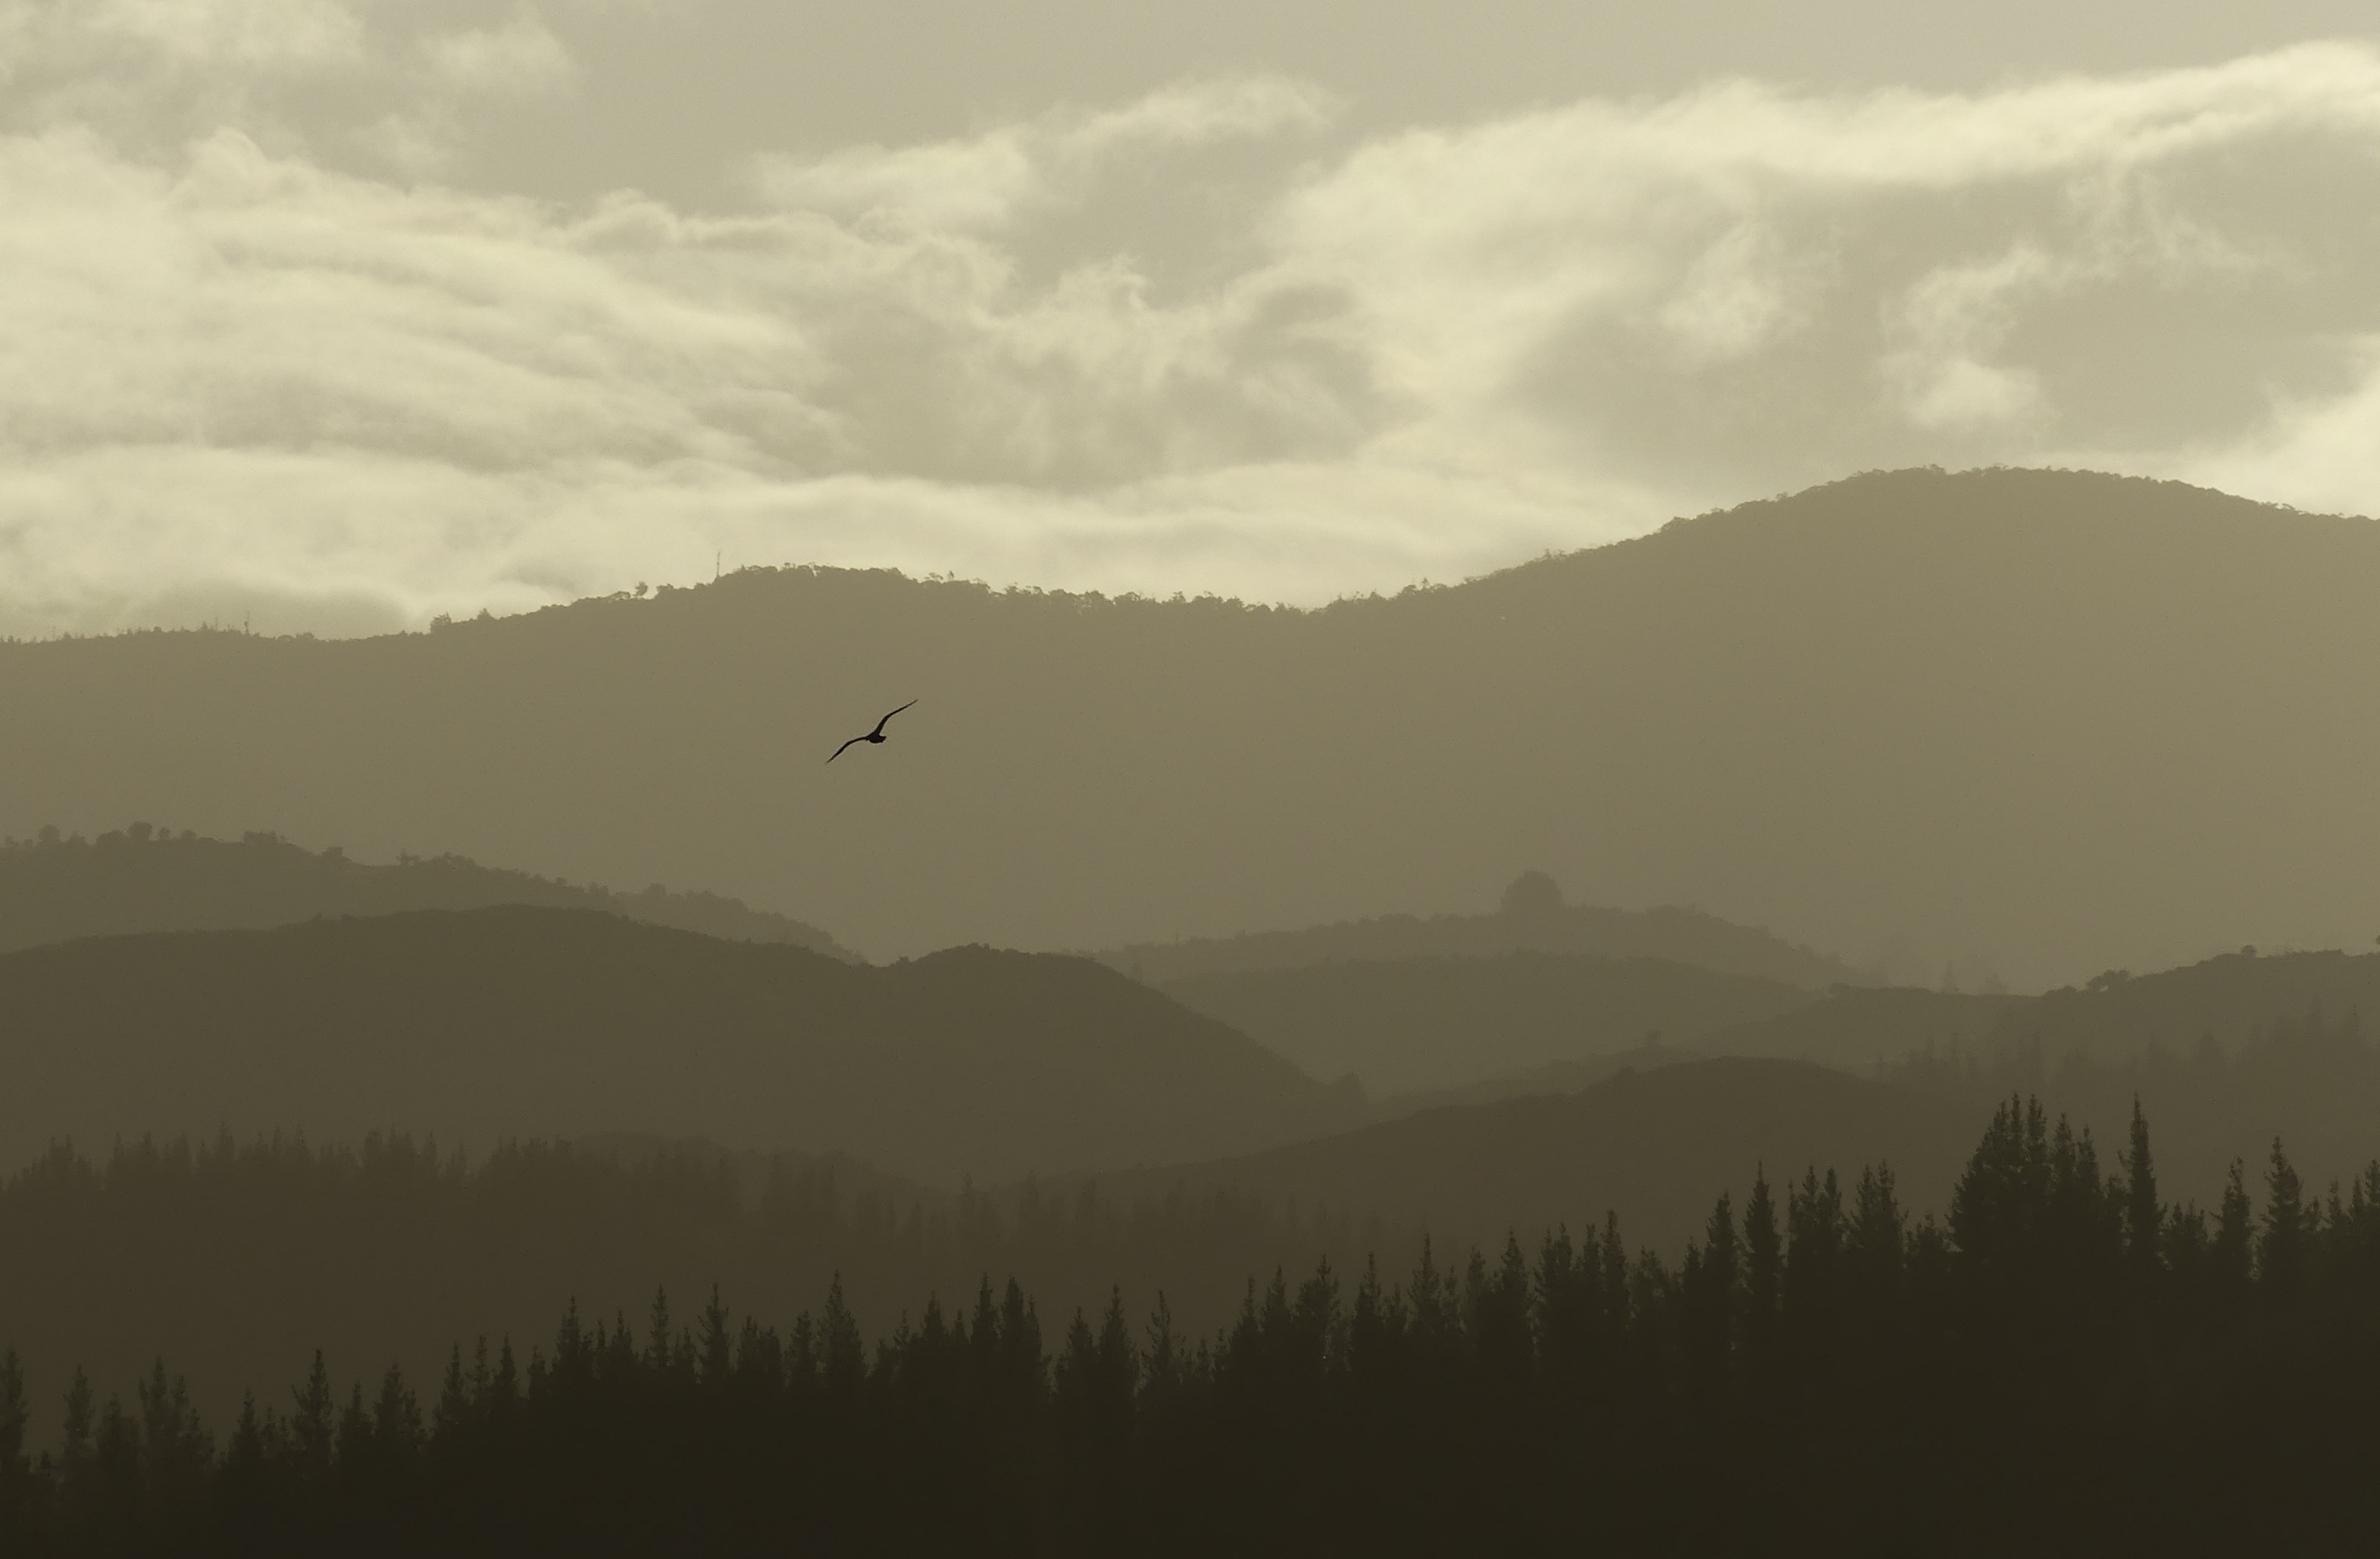 bird flying over mountain with trees